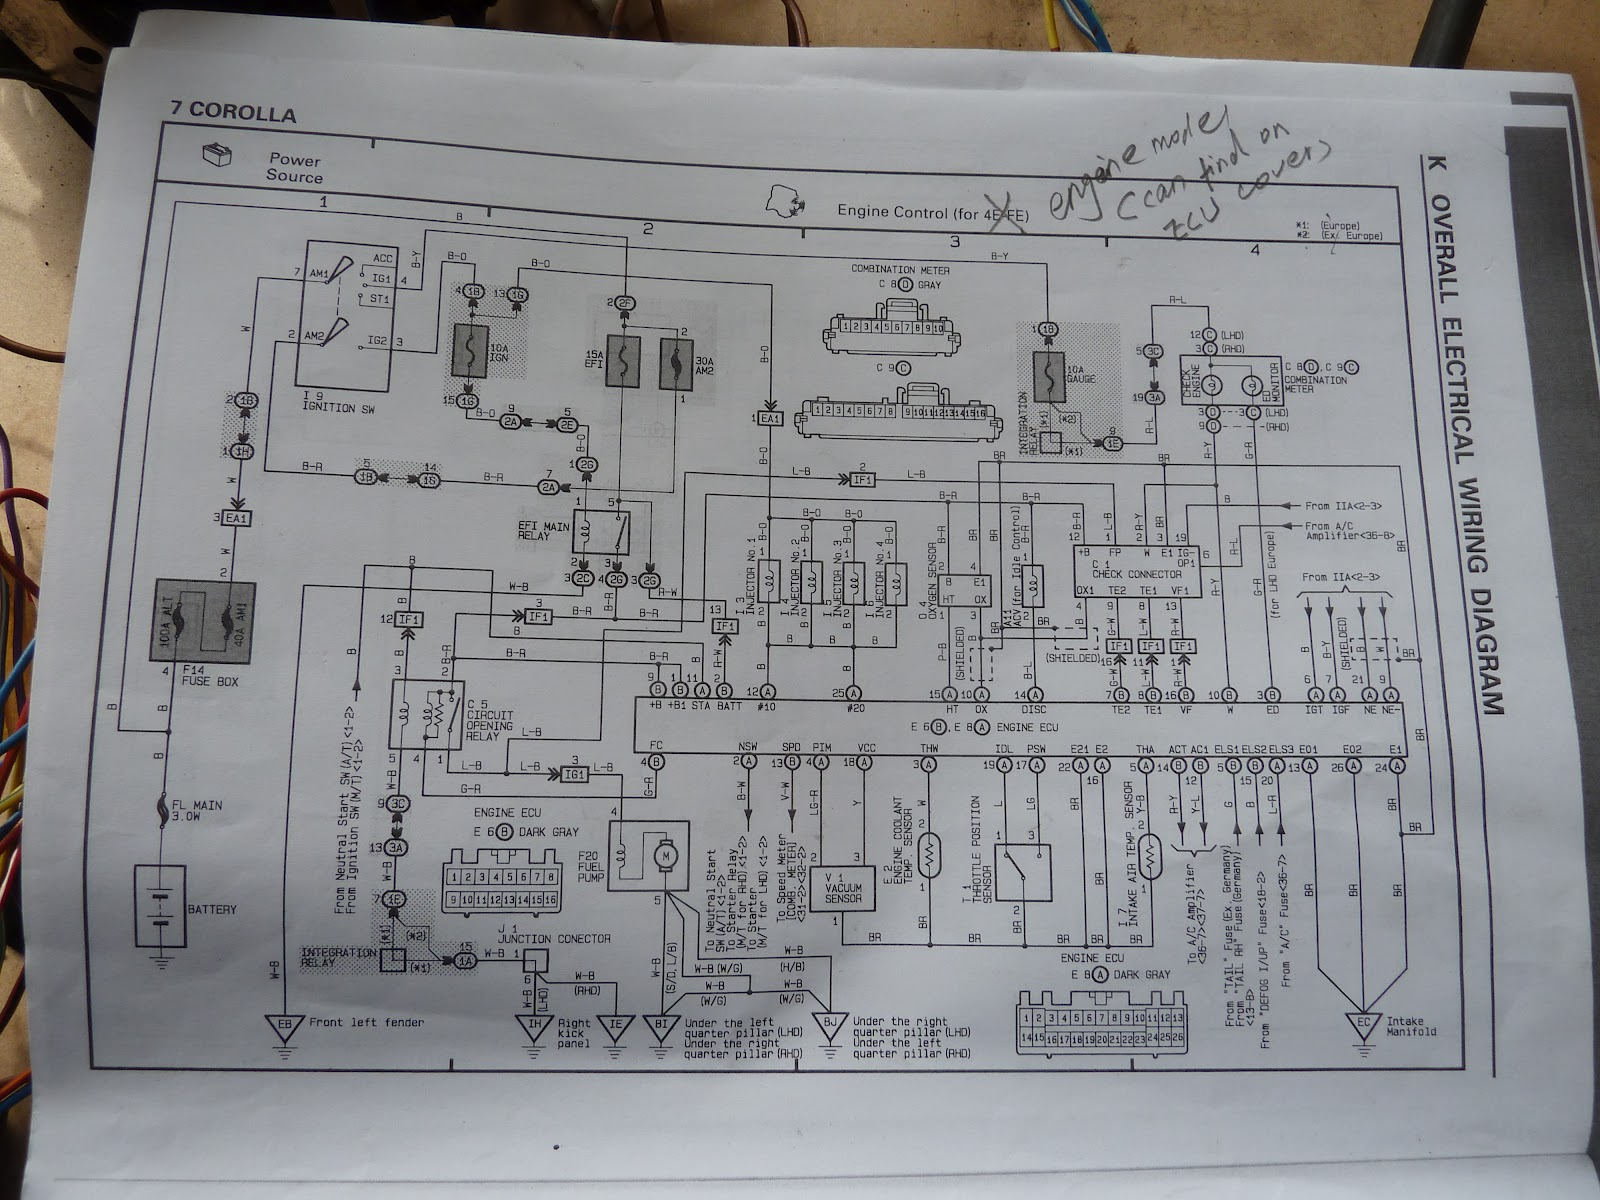 Feng li wiring diagram explanation from the wiring diagram pakage wihch is for 4e fe asfbconference2016 Image collections